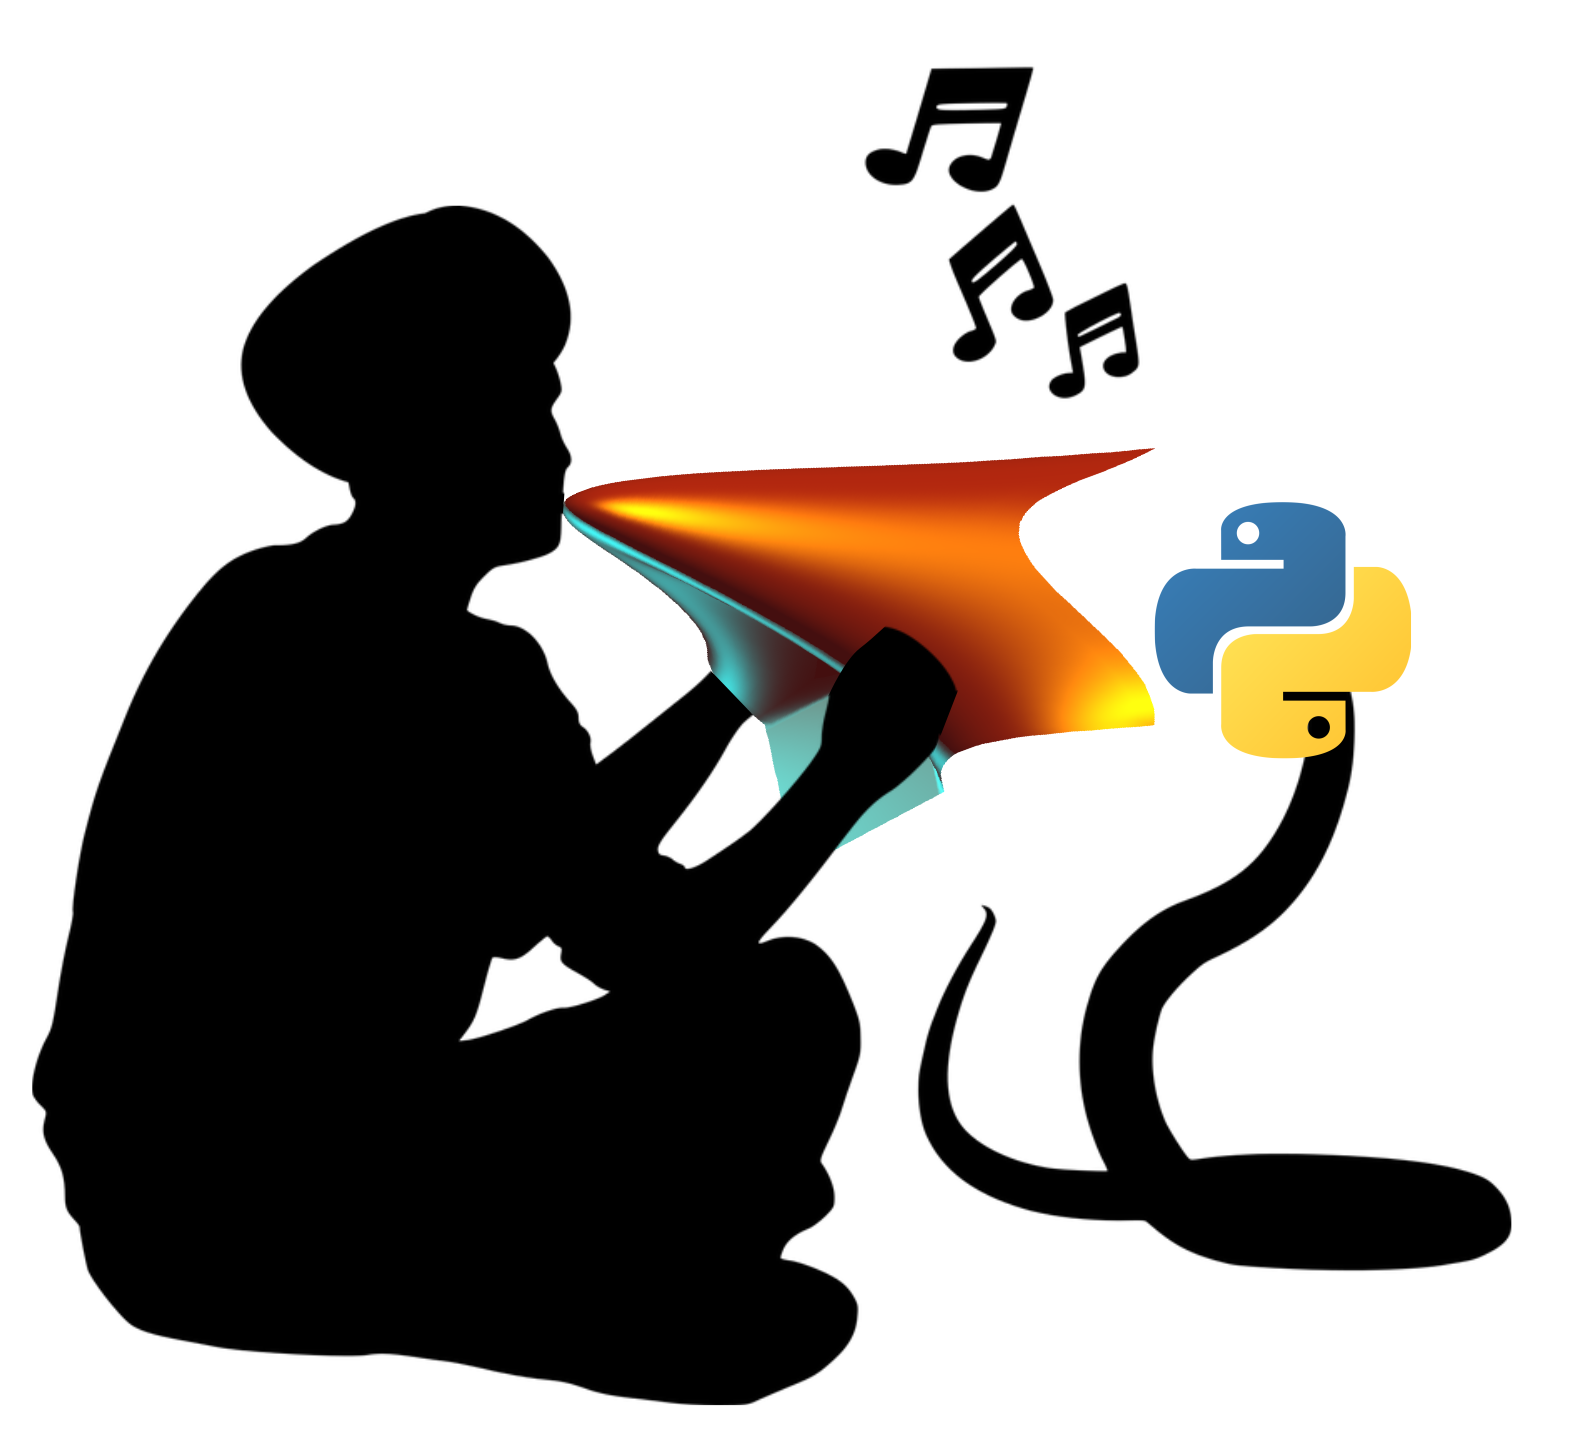 Schematic illustration of calling a Python function from within MATLAB.